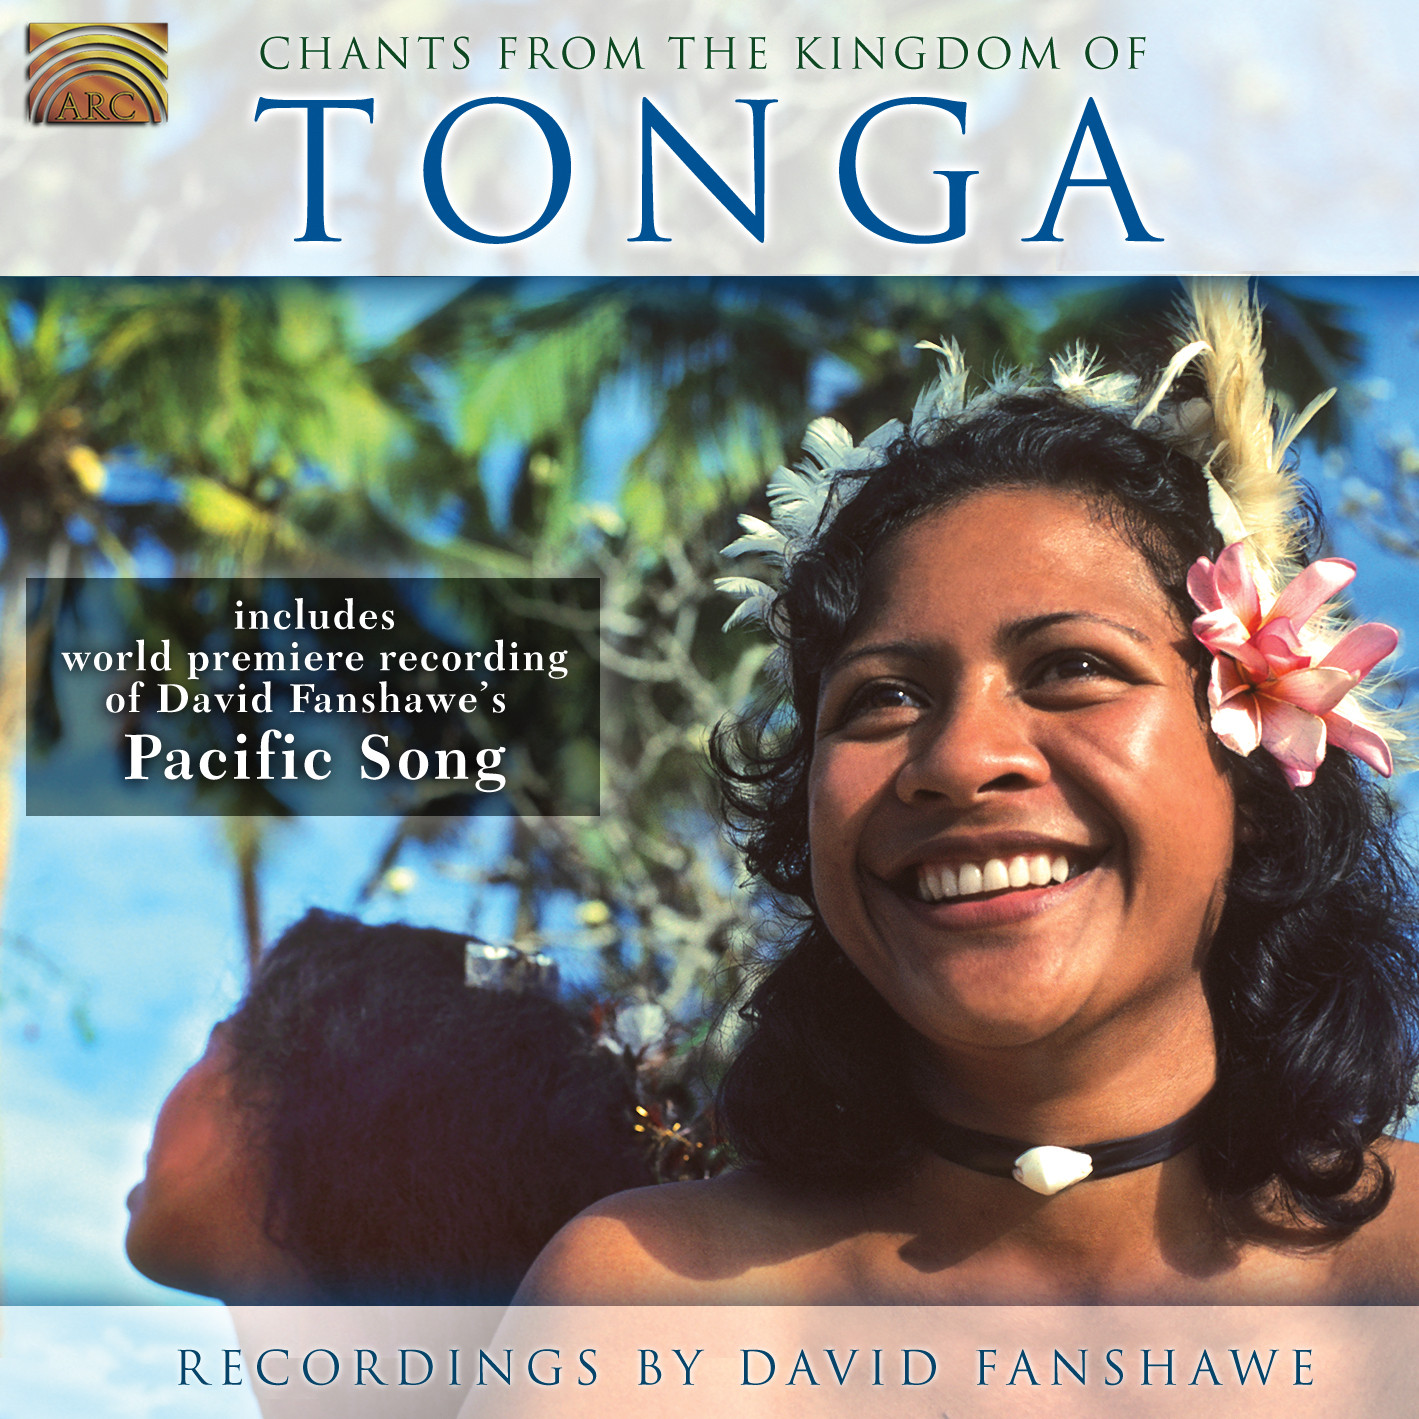 EUCD2159 Chants from the Kingdom of Tonga - Recordings by David Fanshawe